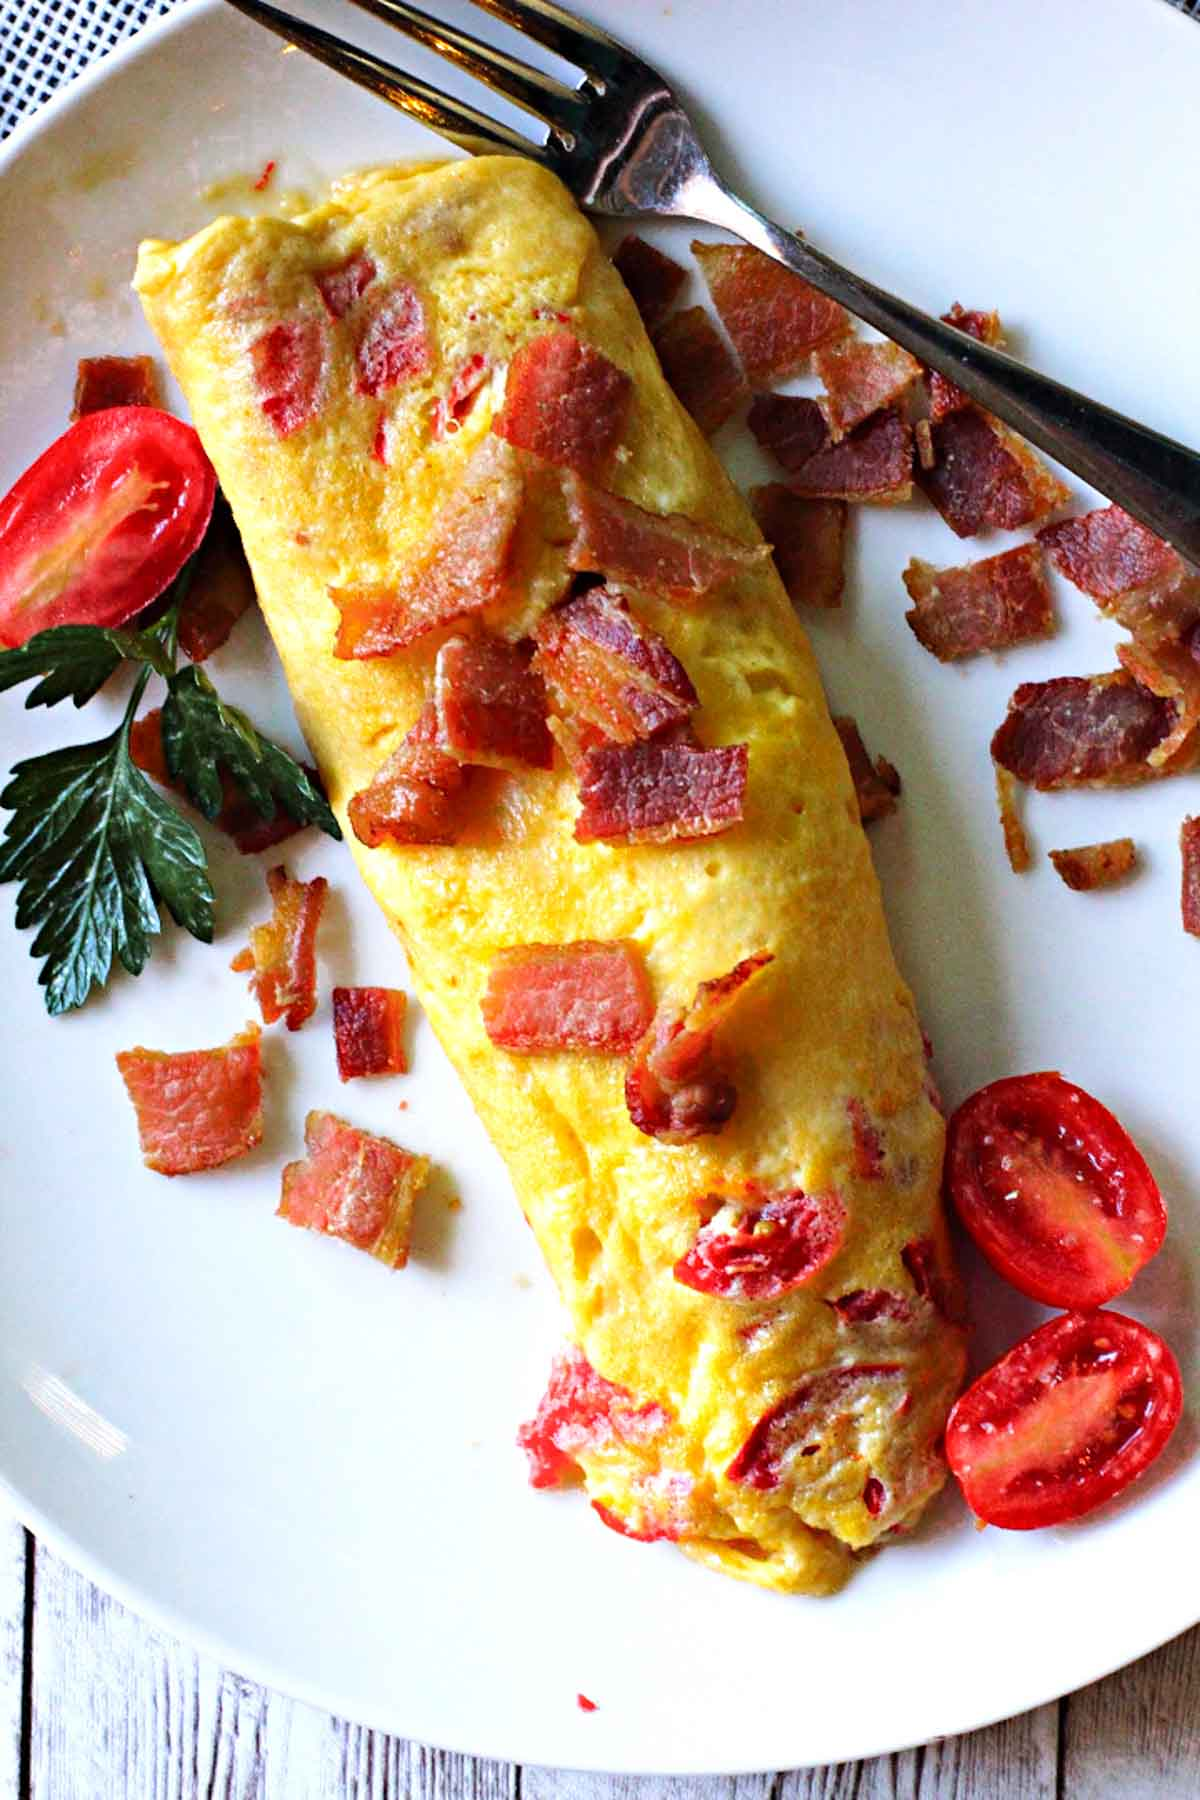 2-egg Omelette topped with bacon and garnished with cherry tomatoes